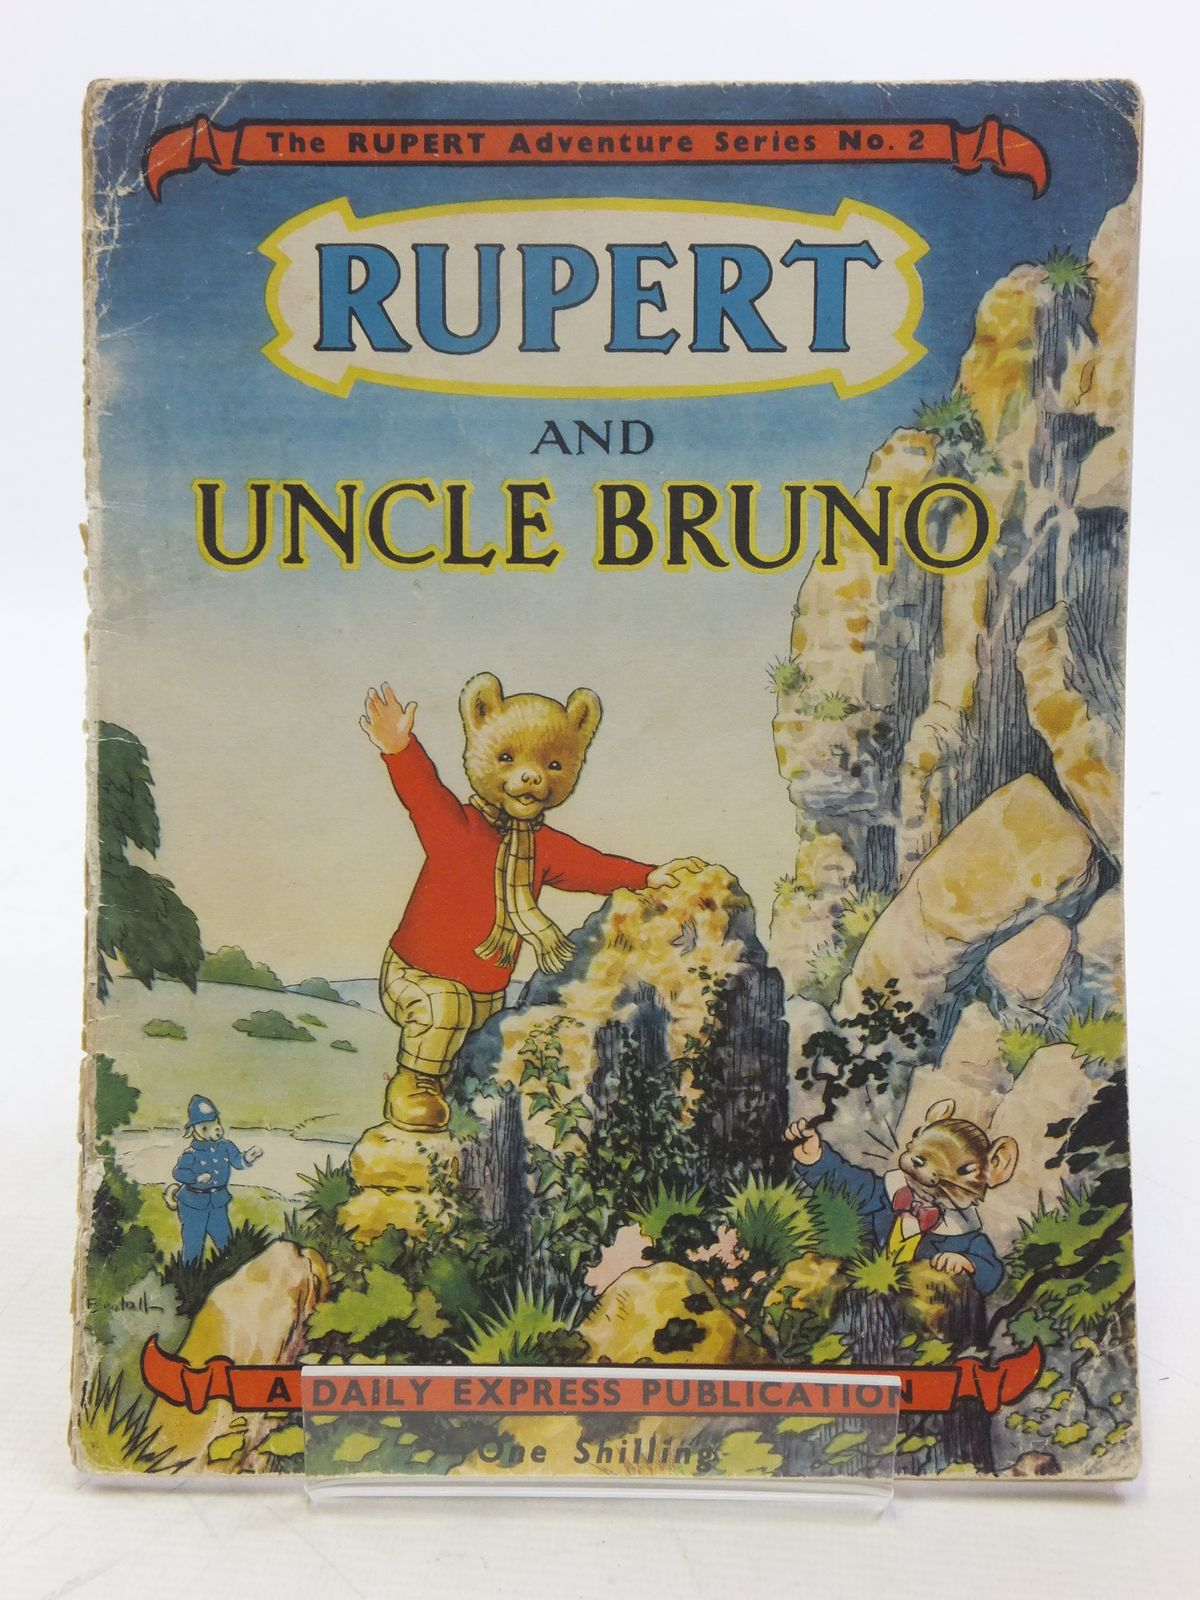 Photo of RUPERT ADVENTURE SERIES No. 2 - RUPERT AND UNCLE BRUNO written by Bestall, Alfred illustrated by Bestall, Alfred published by Daily Express (STOCK CODE: 2119446)  for sale by Stella & Rose's Books